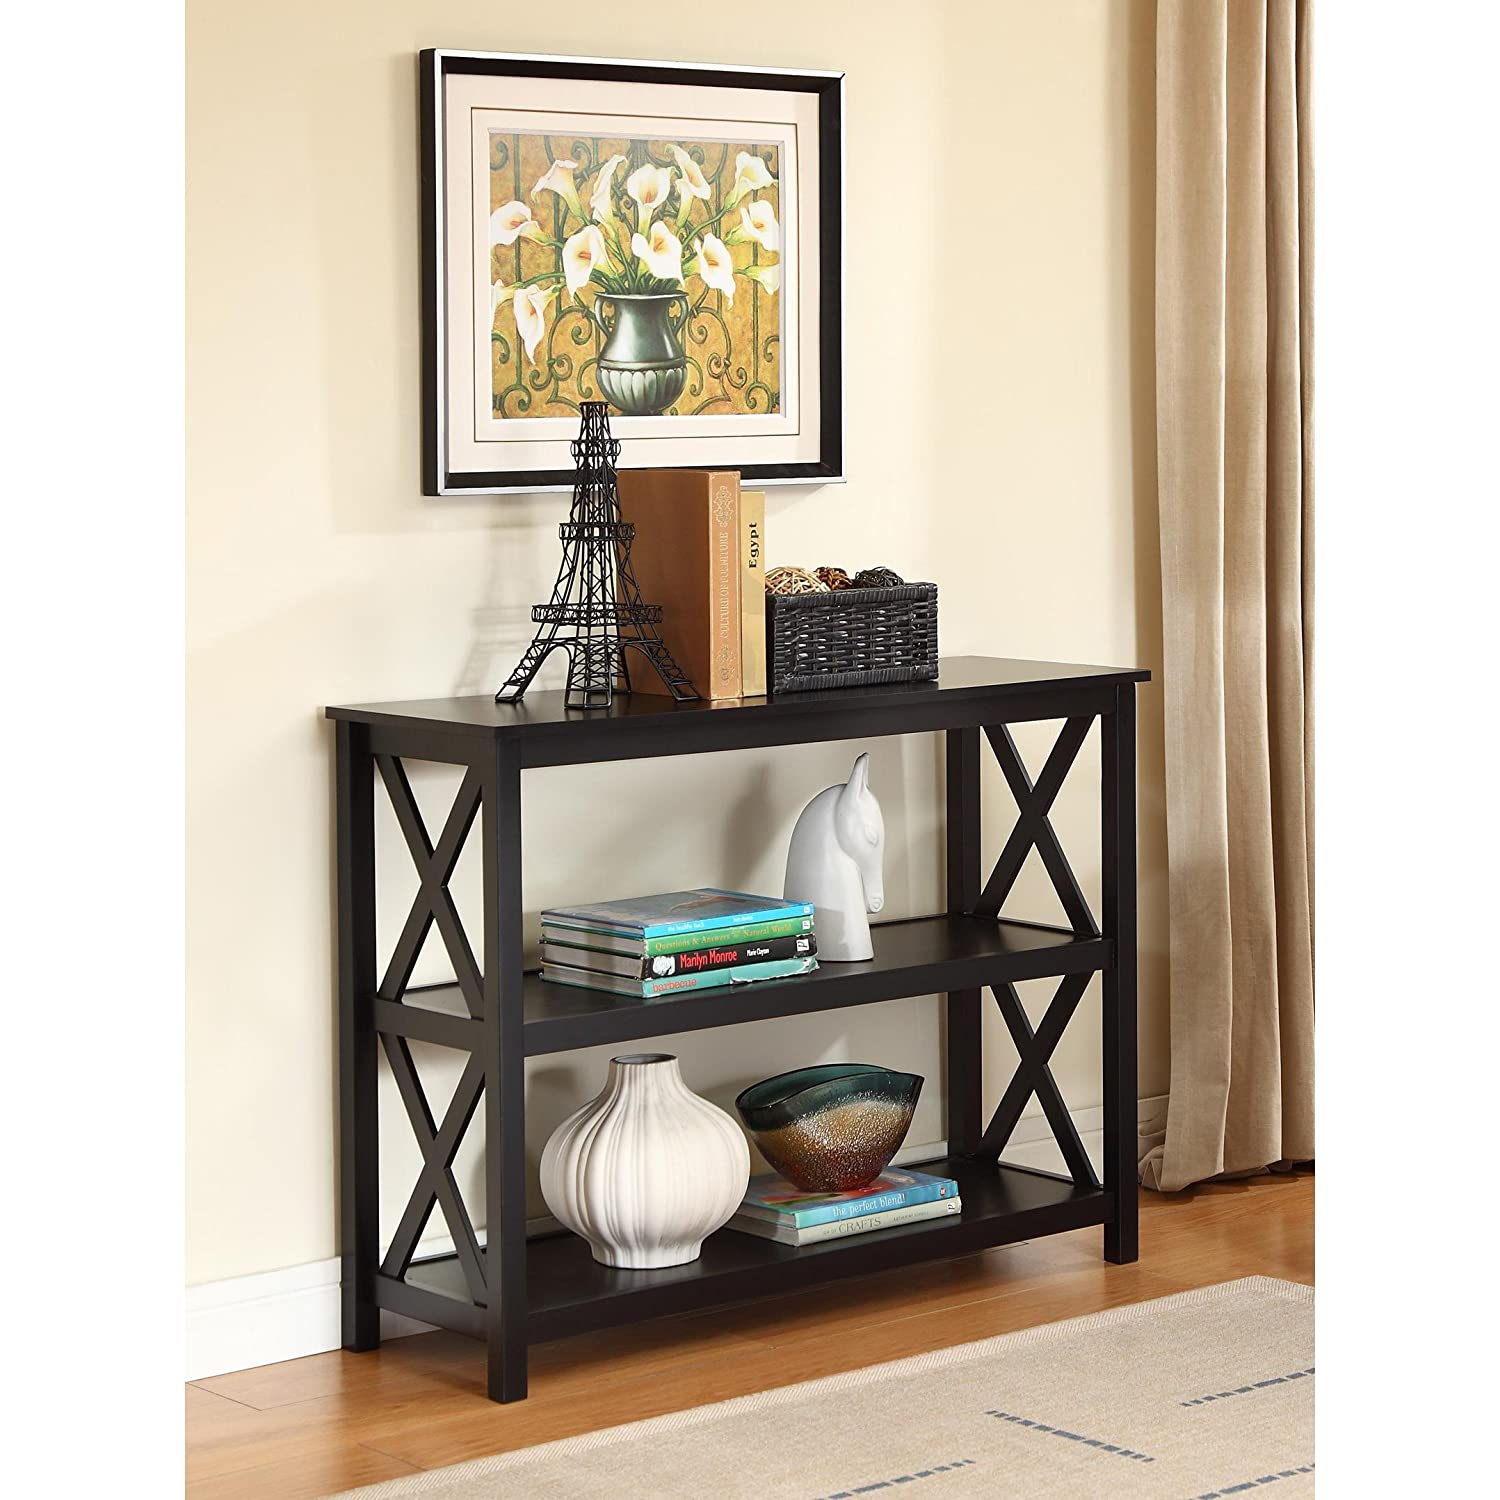 Black Occasional Console Sofa Table Bookshelf CHECK PRICE title=